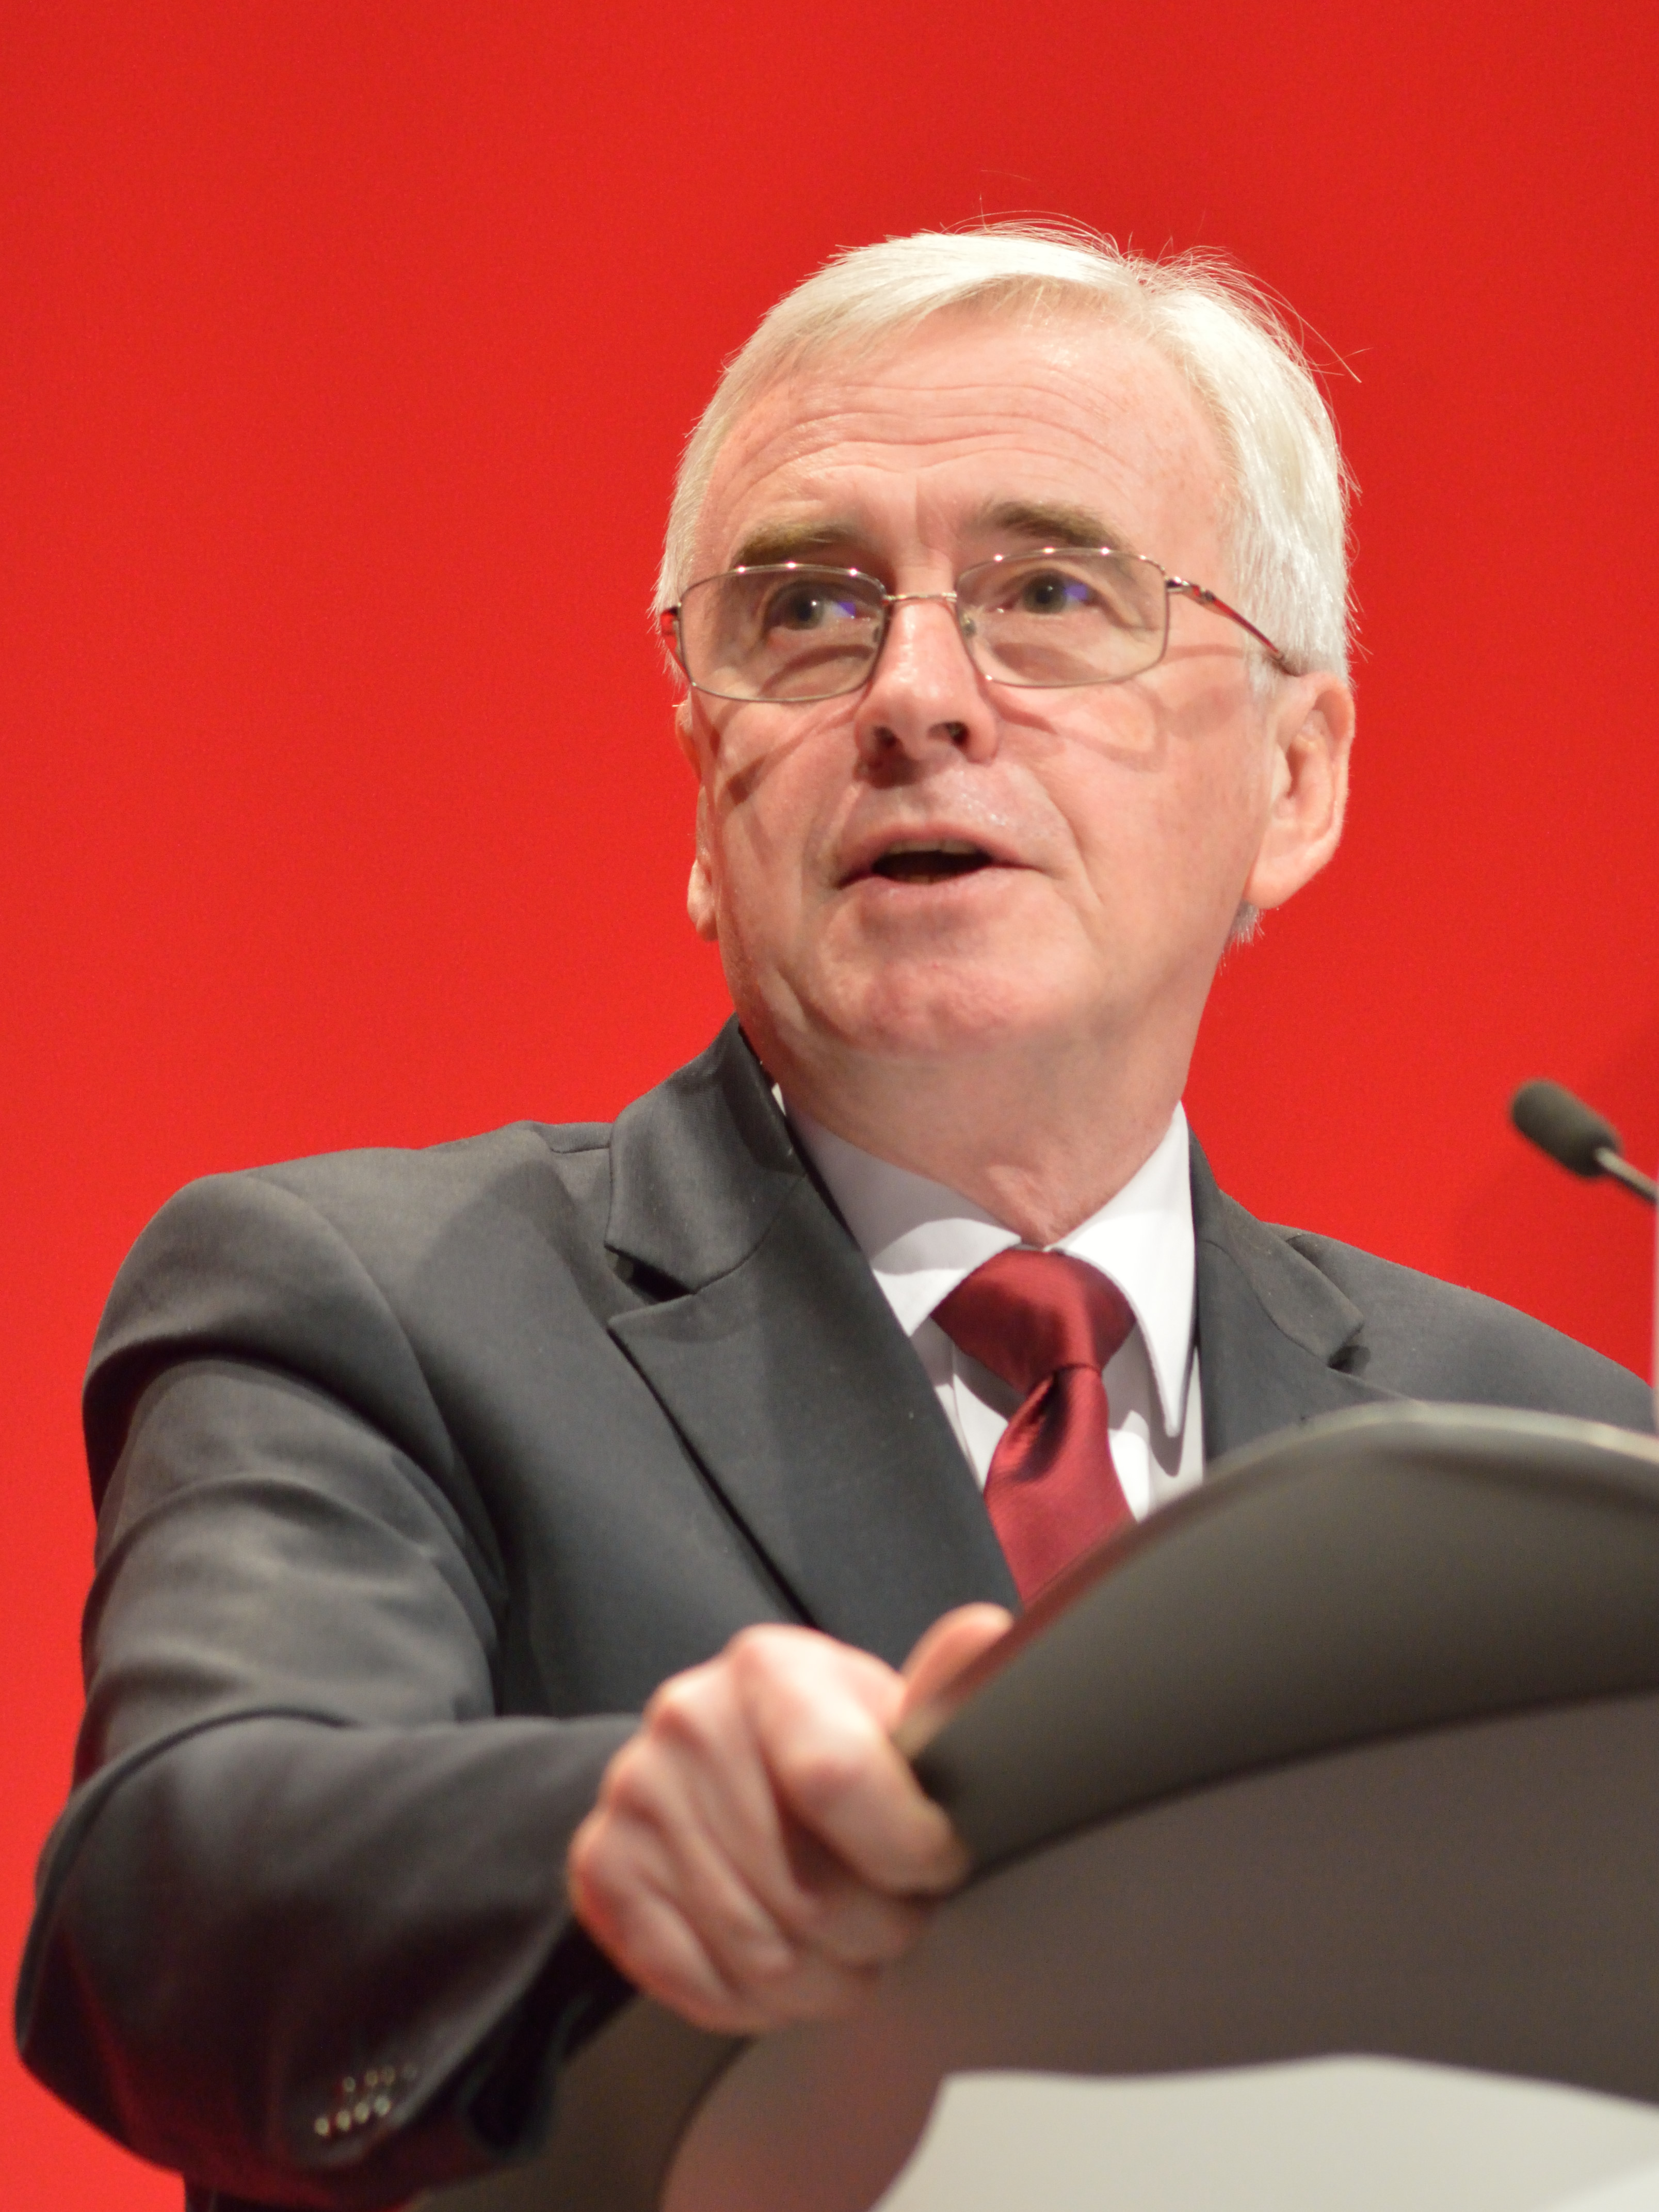 McDonnell at the 2016 Labour Party Conference